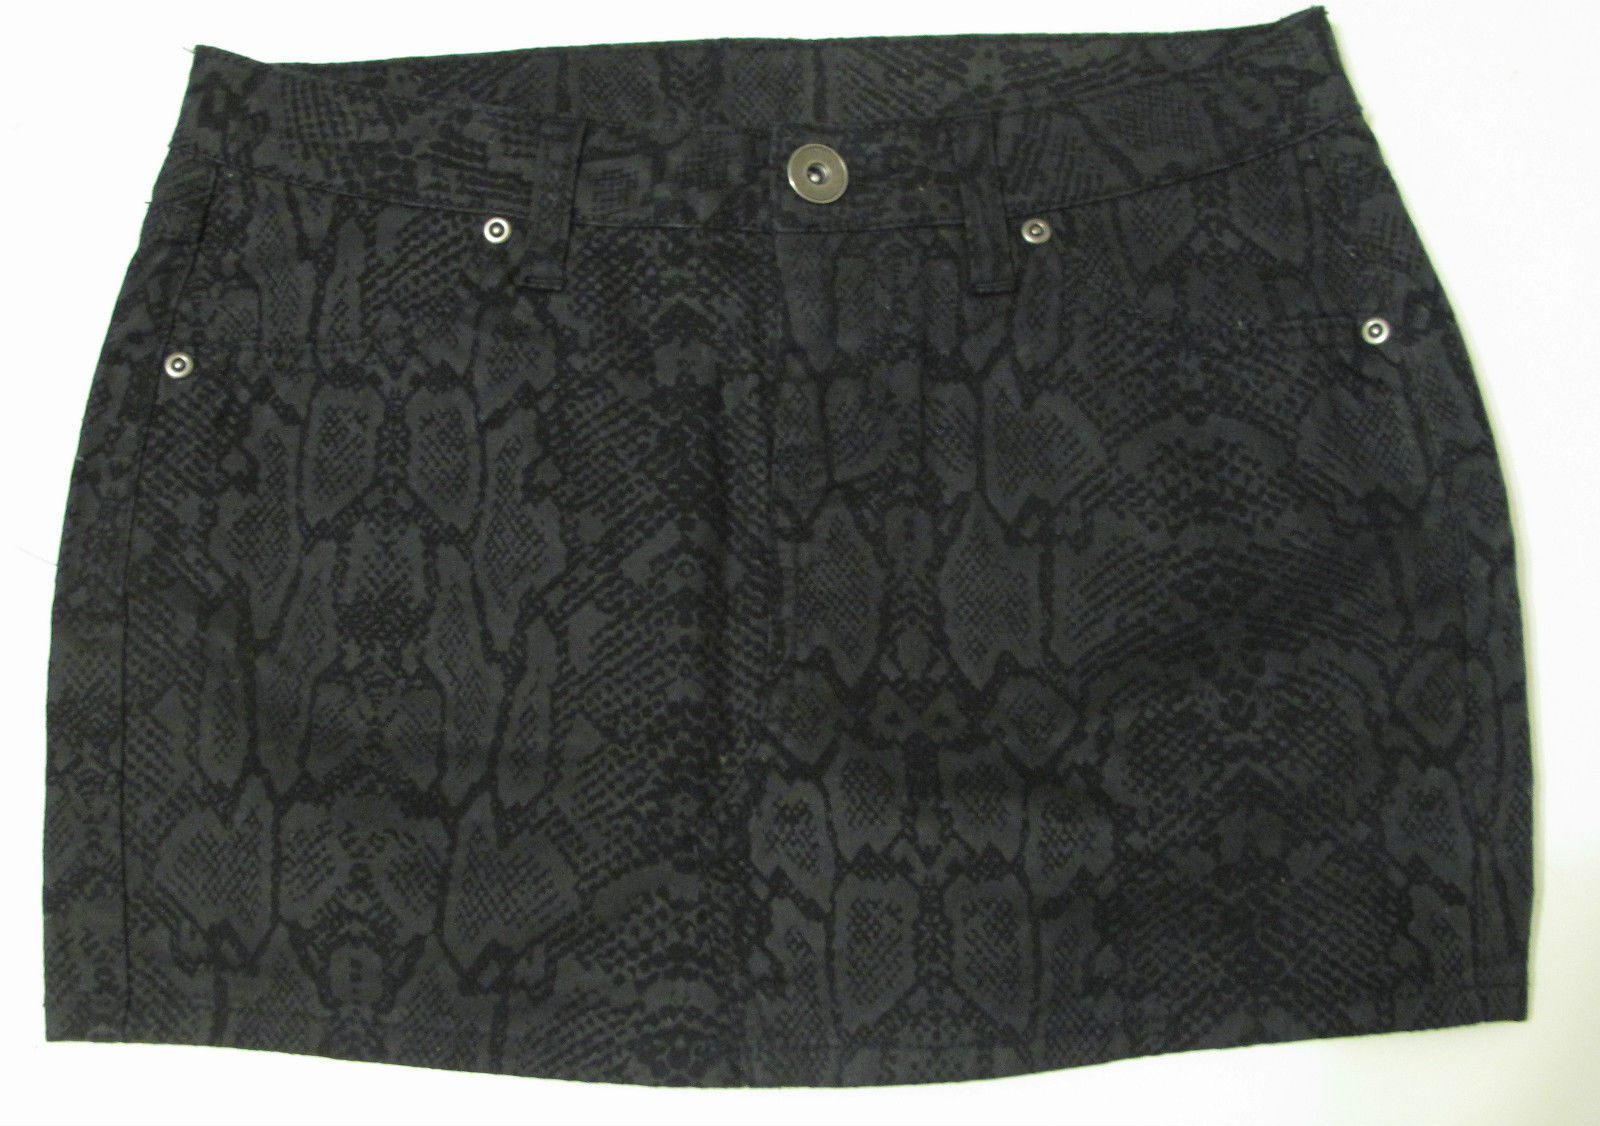 City Streets Printed Mini Skirt Size 3 Off Black Cotton blend